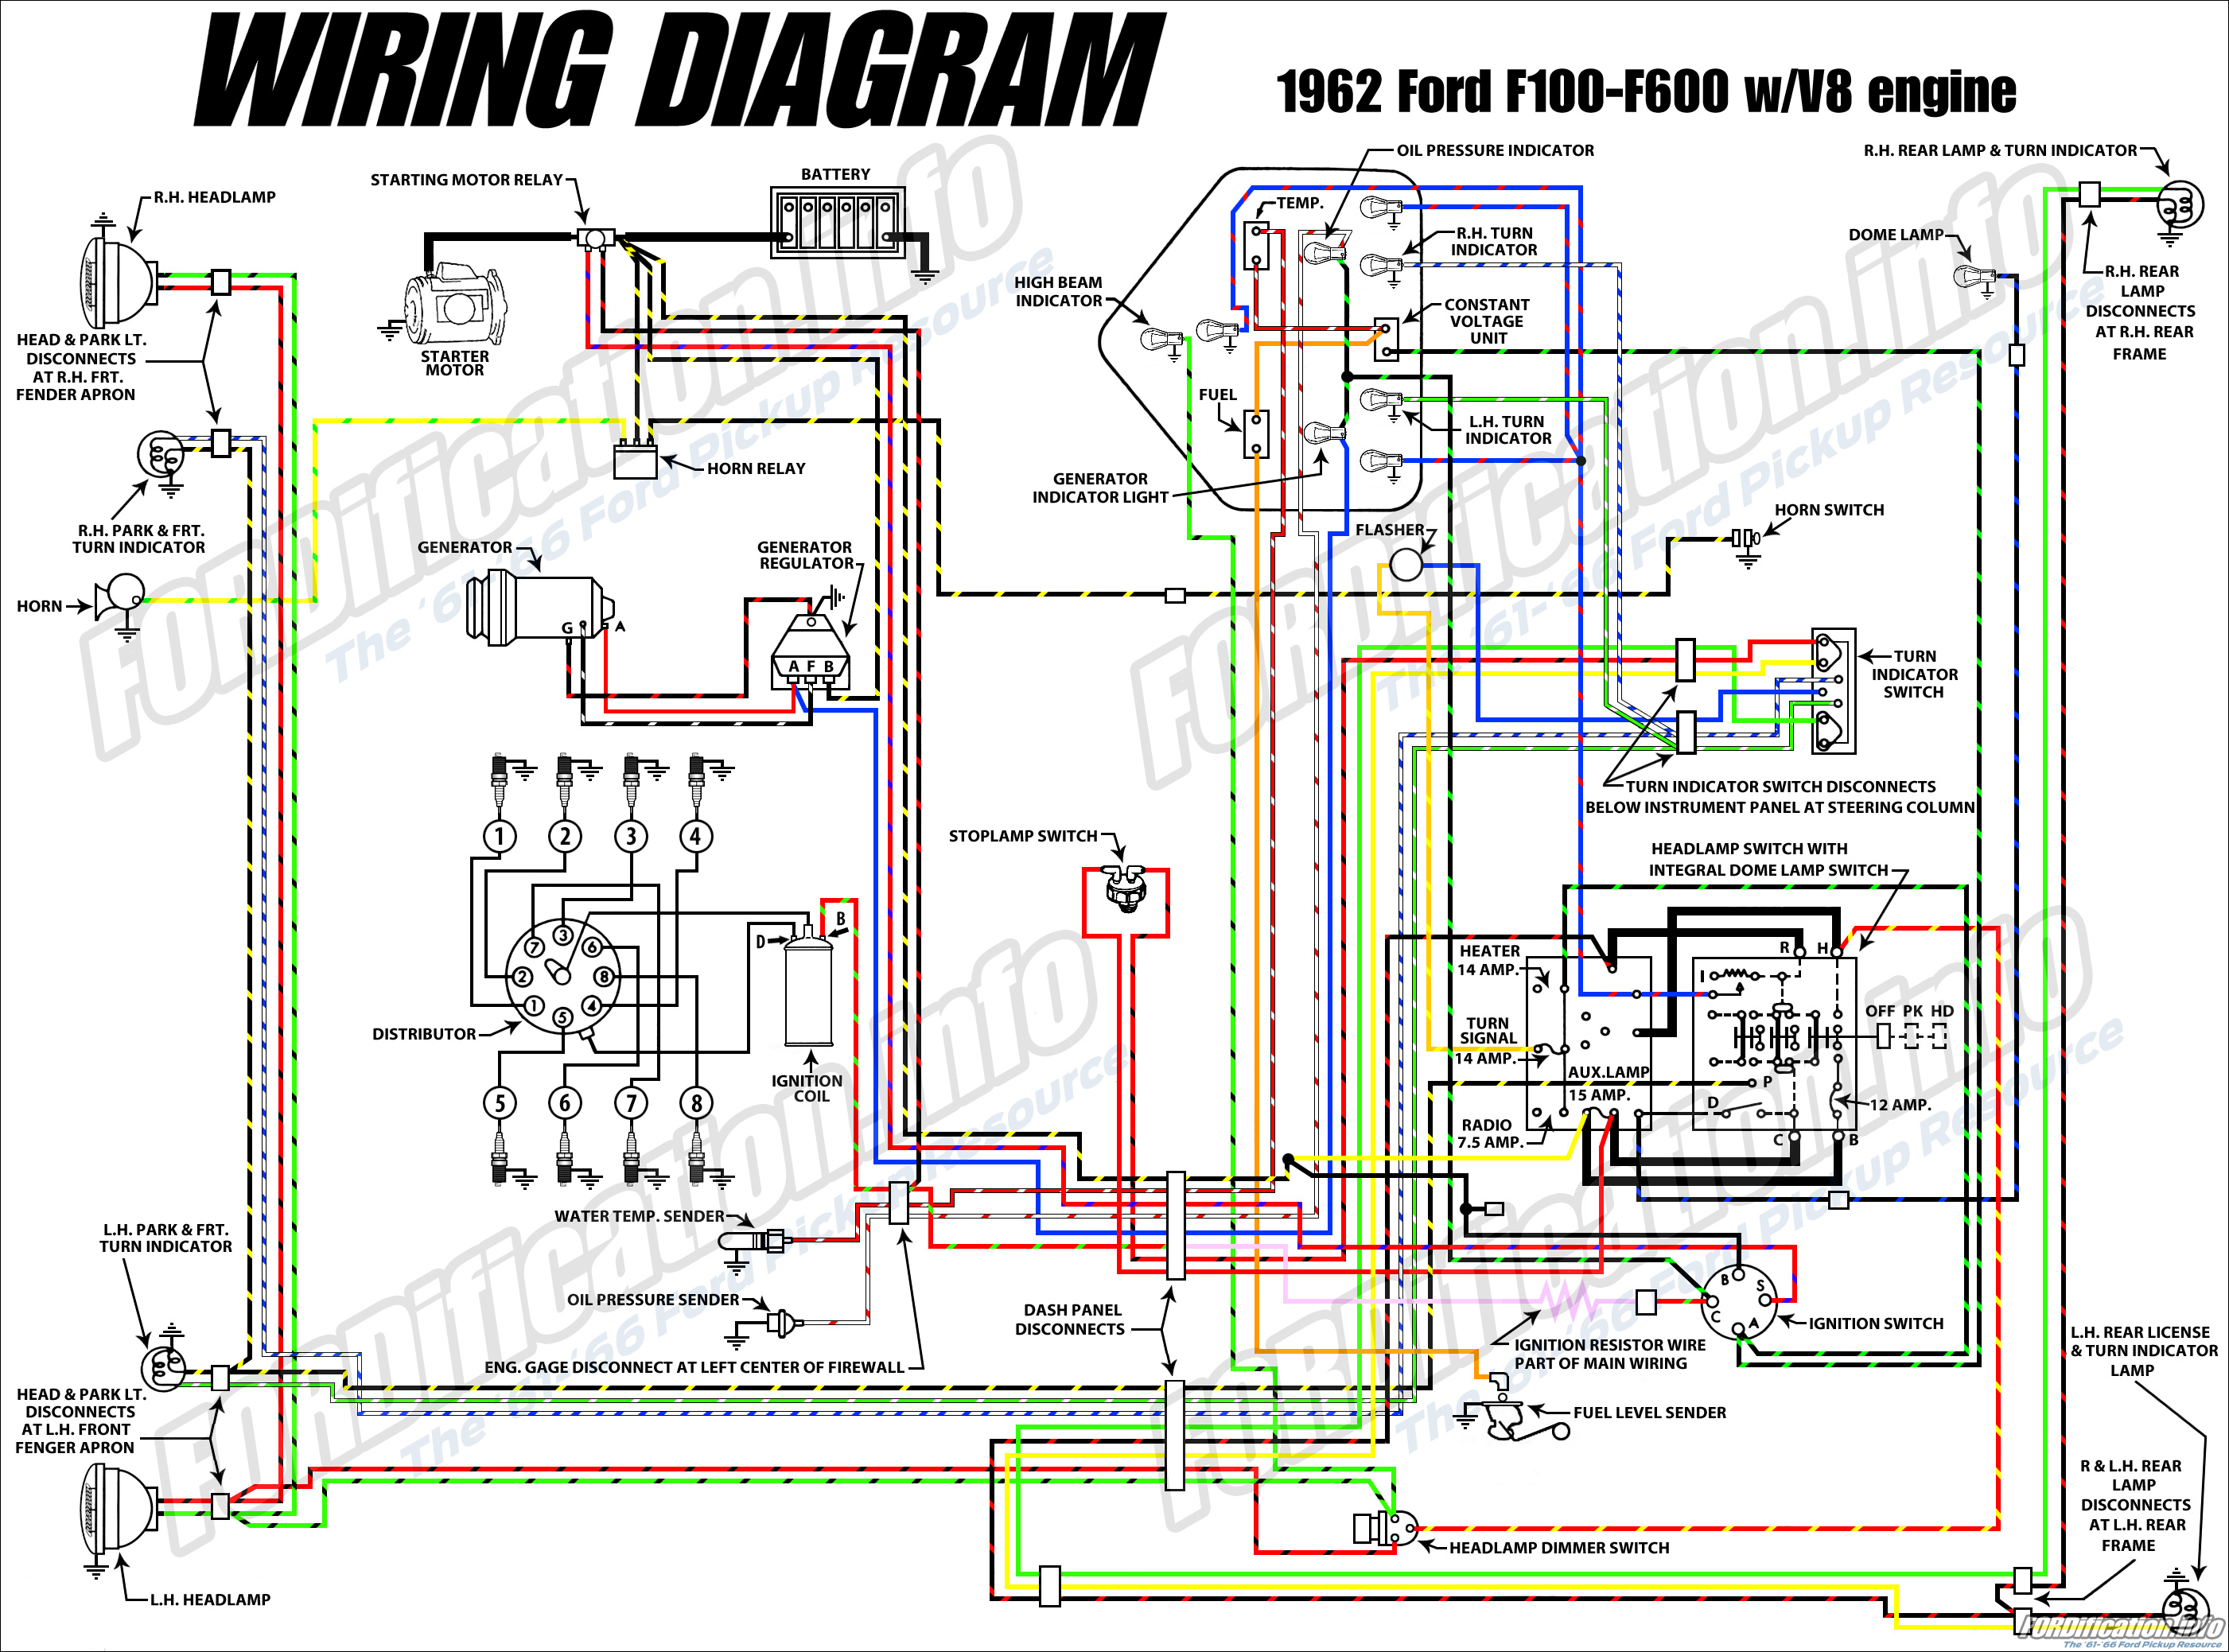 1962fordtruck_masterwiring 1962 ford truck wiring diagrams fordification info the '61 '66 ford truck wiring diagrams at fashall.co